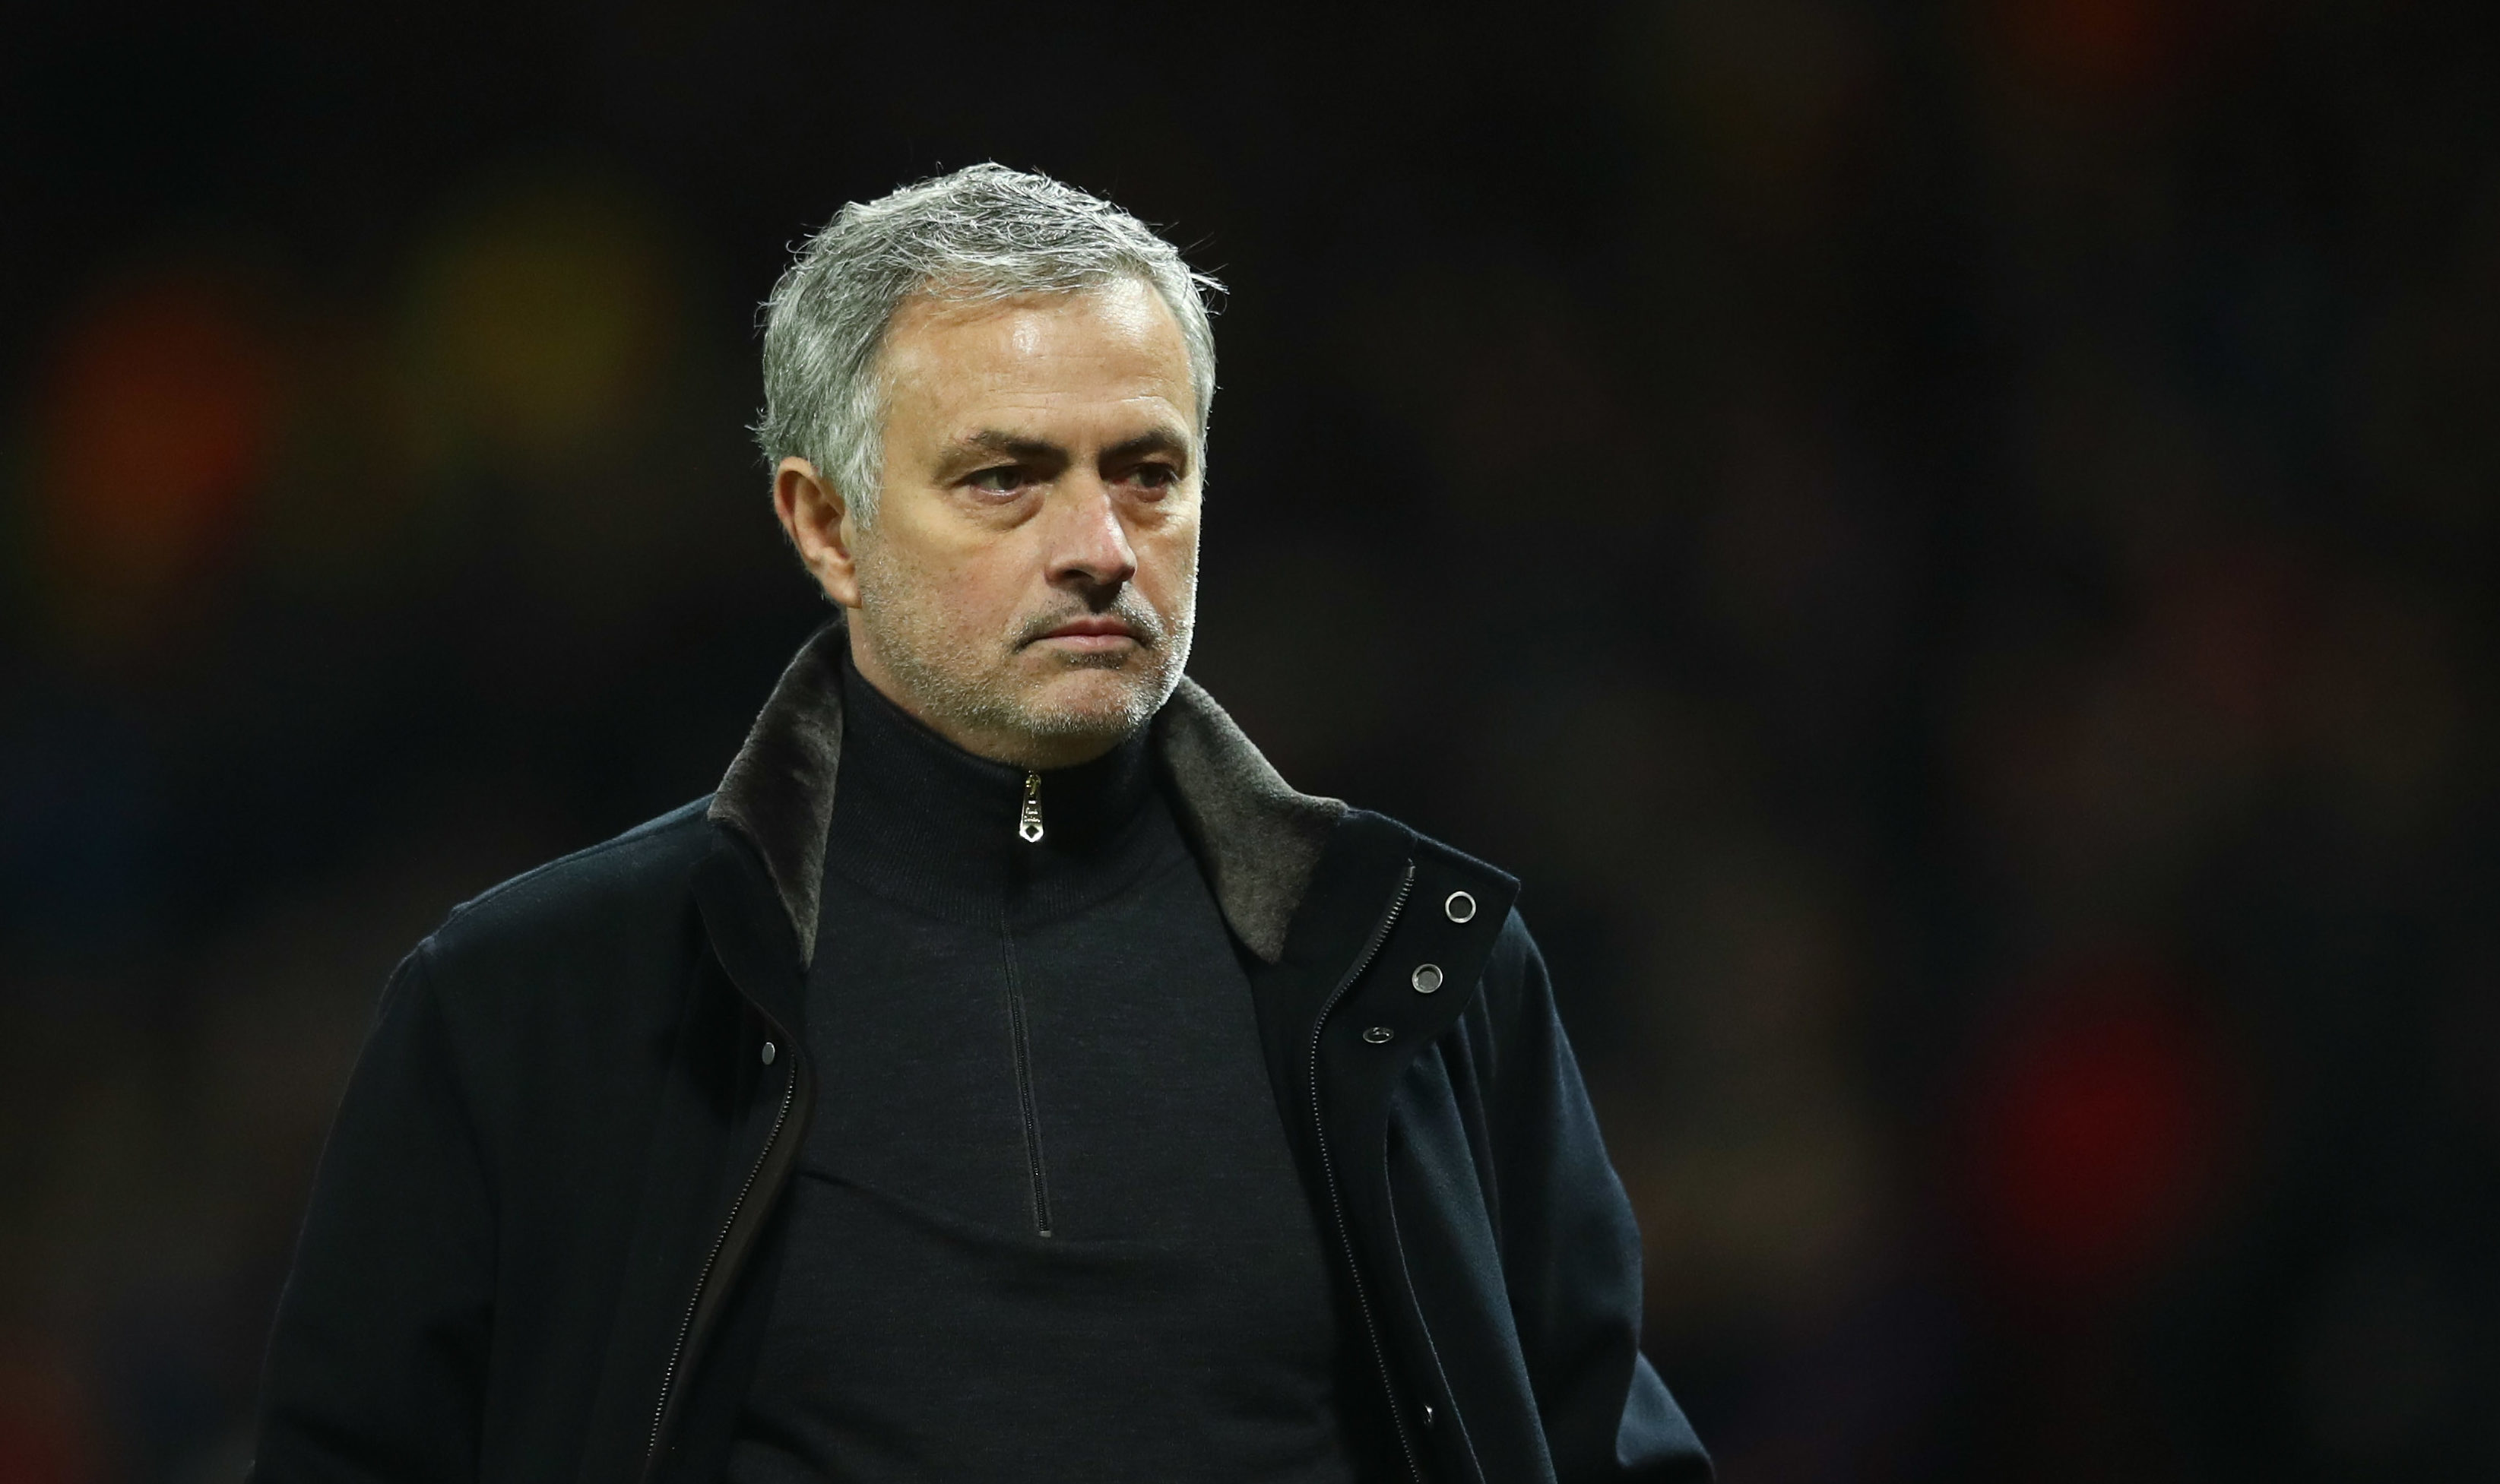 Jose Mourinho (Clive Mason/Getty Images)